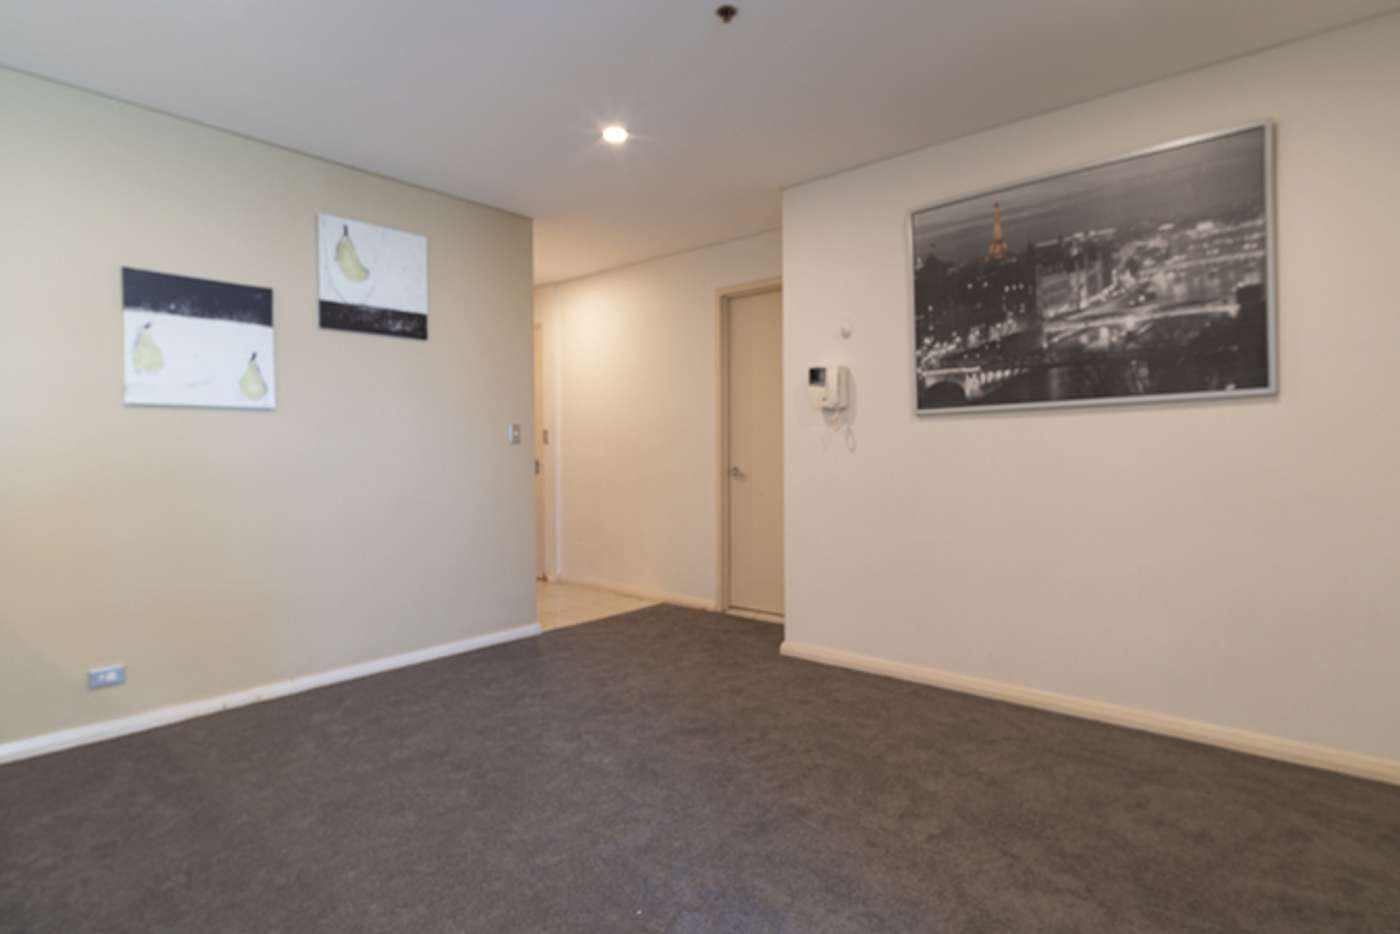 Sixth view of Homely apartment listing, 1106/6 Lachlan Street, Waterloo NSW 2017